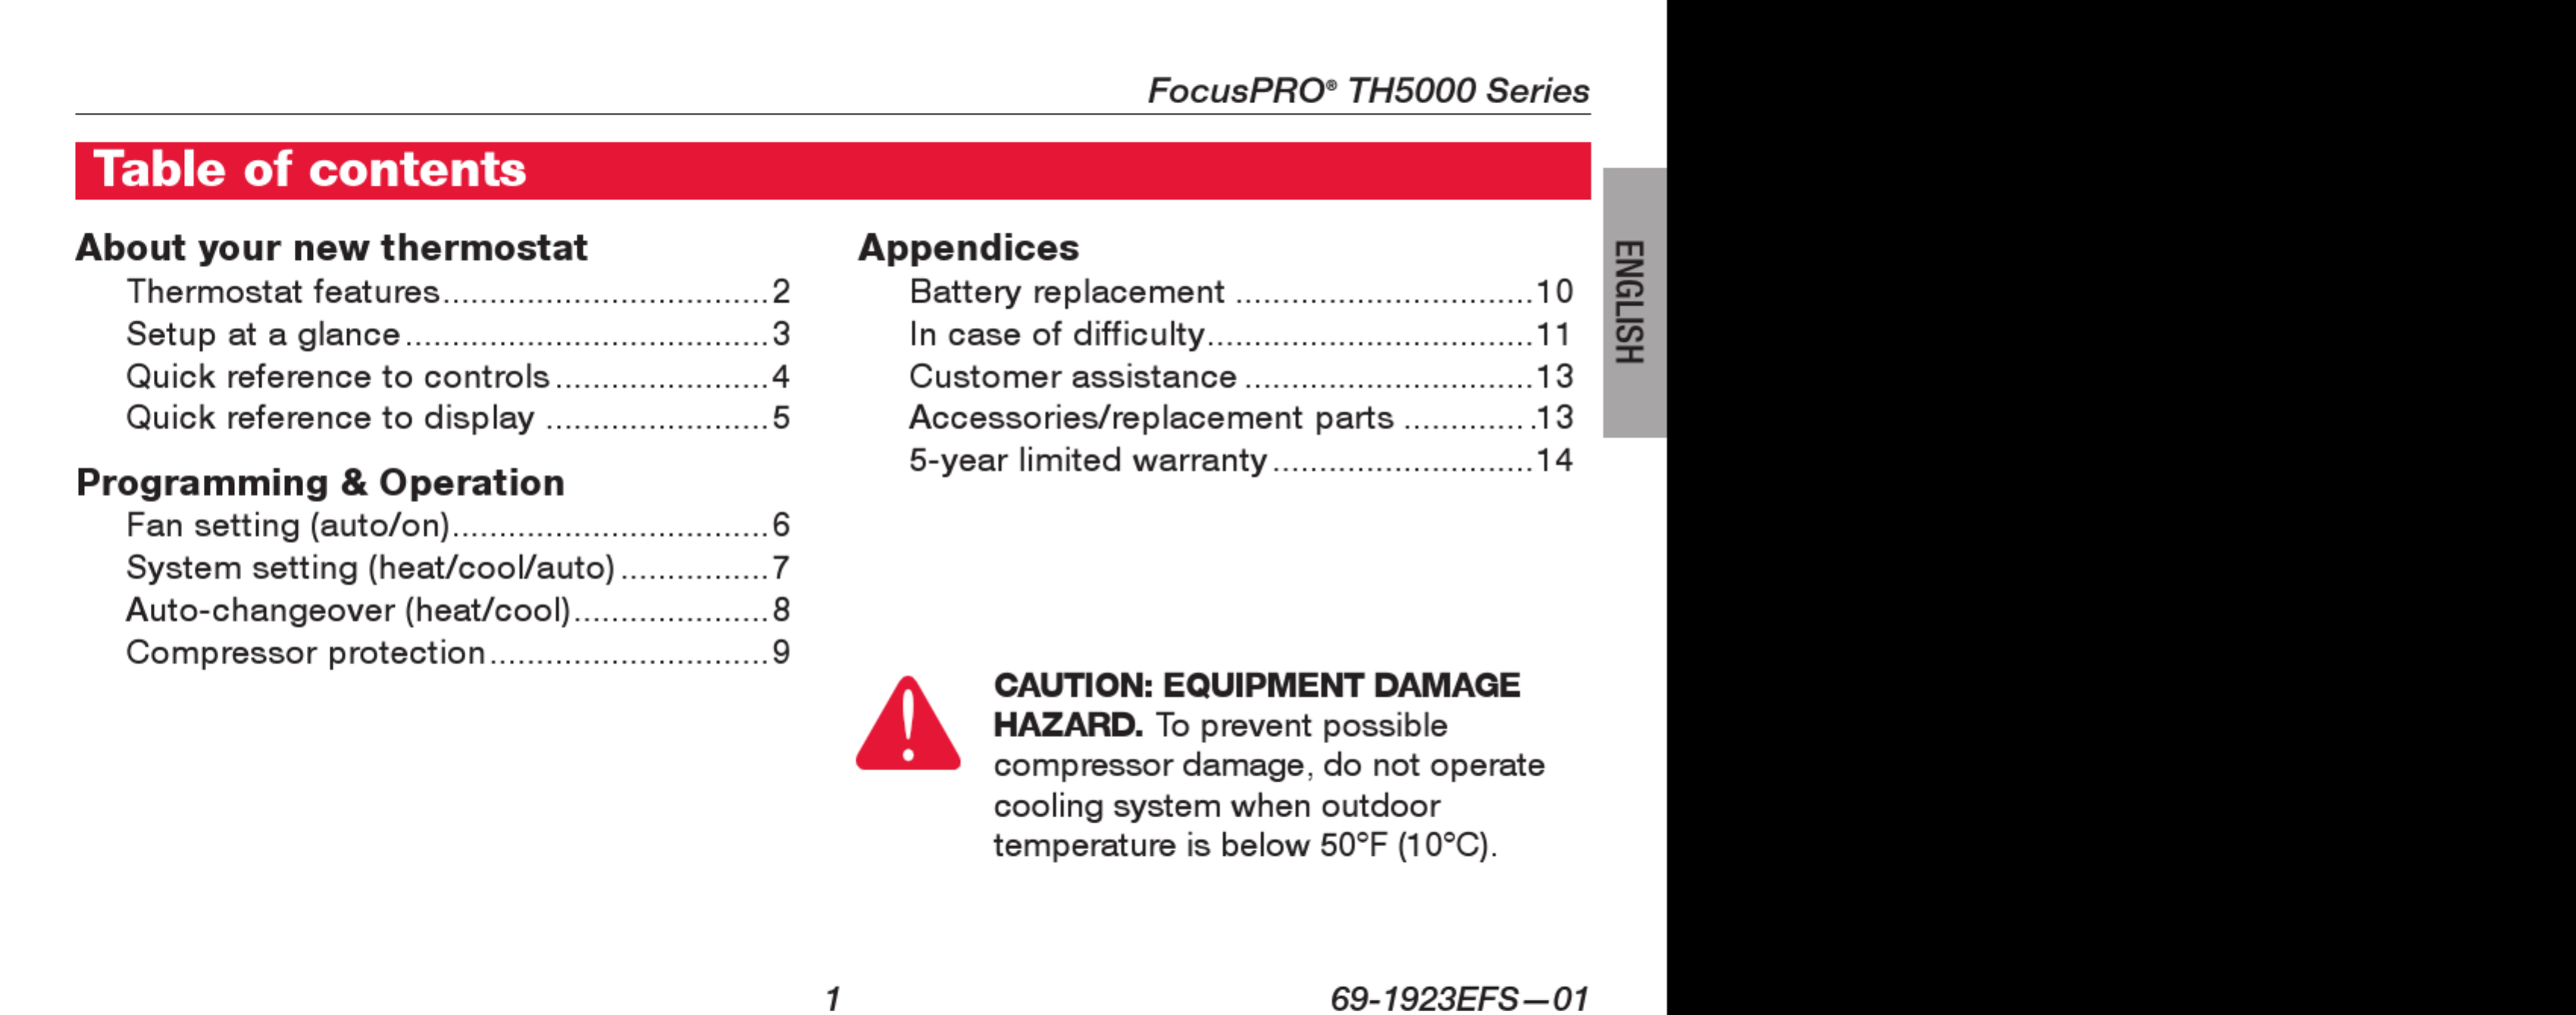 Honeywell Th5000 Wiring Diagram Th8000 Focuspro Series Operating Manual 1002805 User On Th5220d